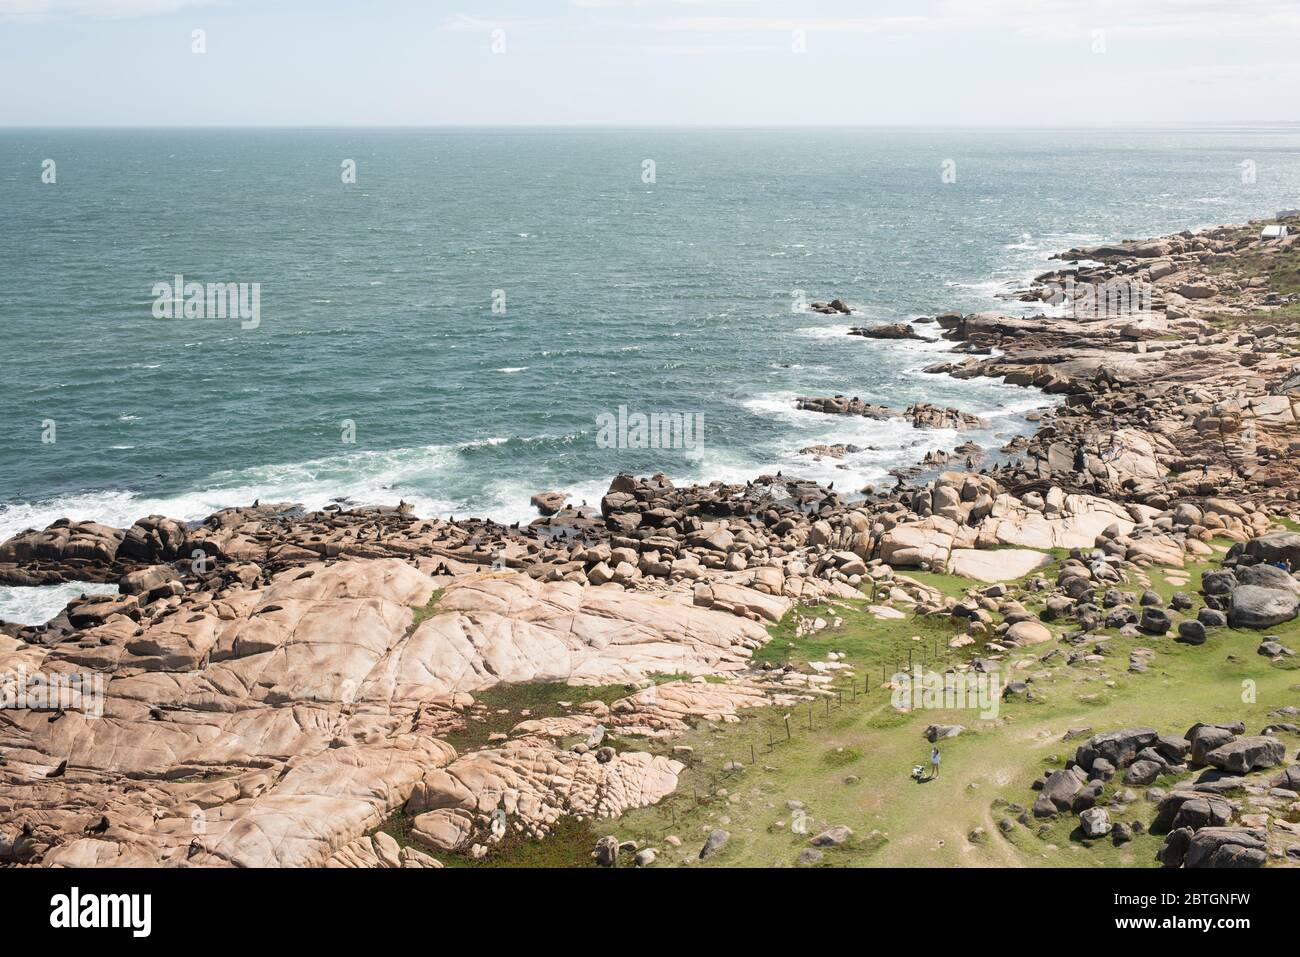 Aerial view of the coast of Cabo Polonio. South American fur seals, Arctocephalus australis, and South American sea lions, Otaria flavescens, on a roc Stock Photo